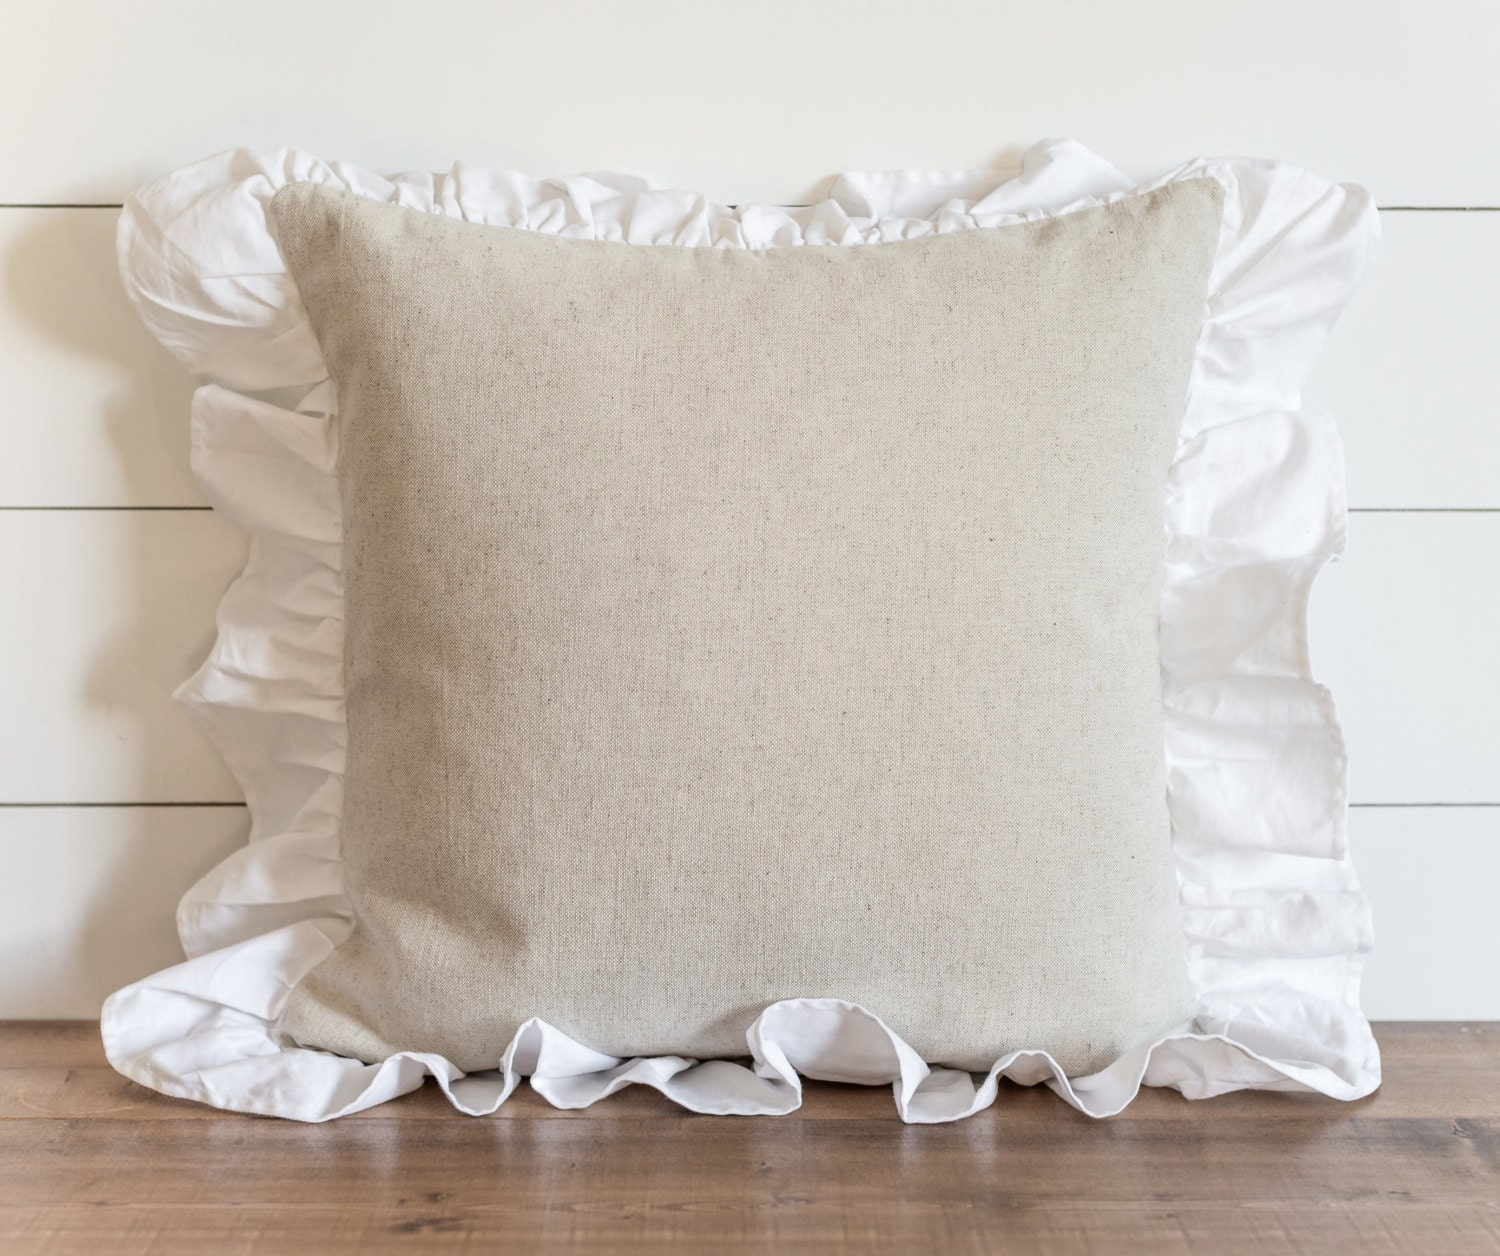 Ruffle 20 x 20 Pillow Cover // Everyday // Throw Pillow